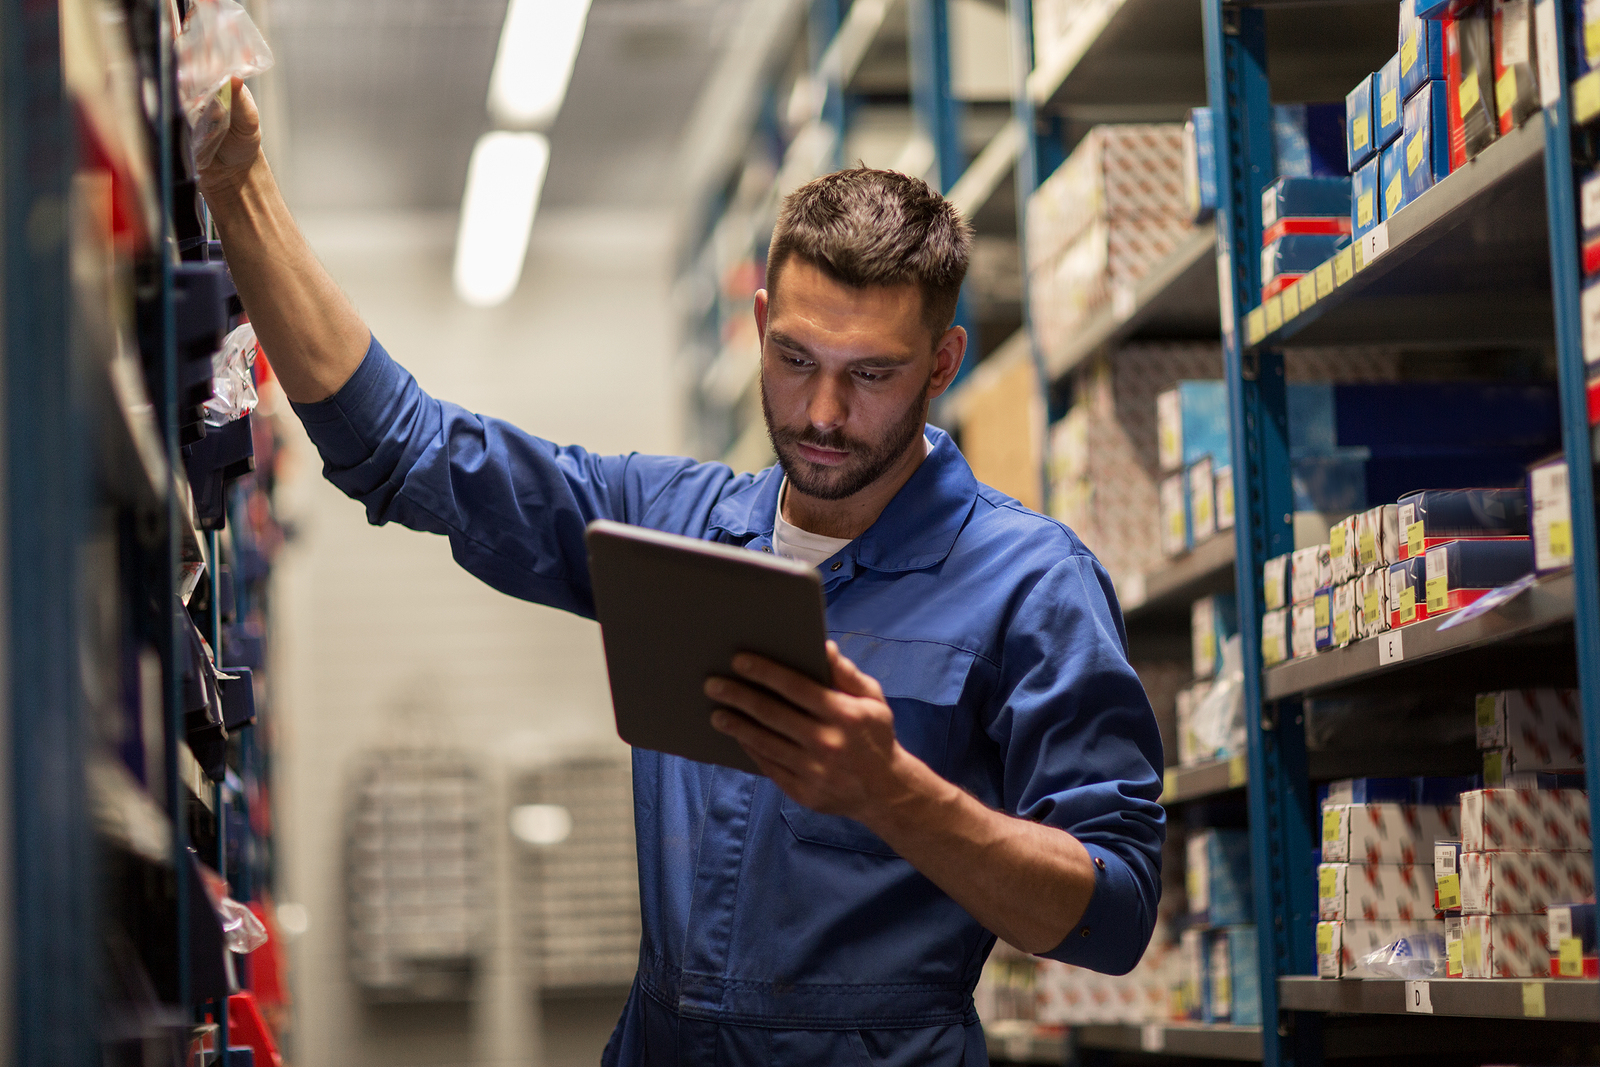 man retrieving parts from a warehouse and checking tablet